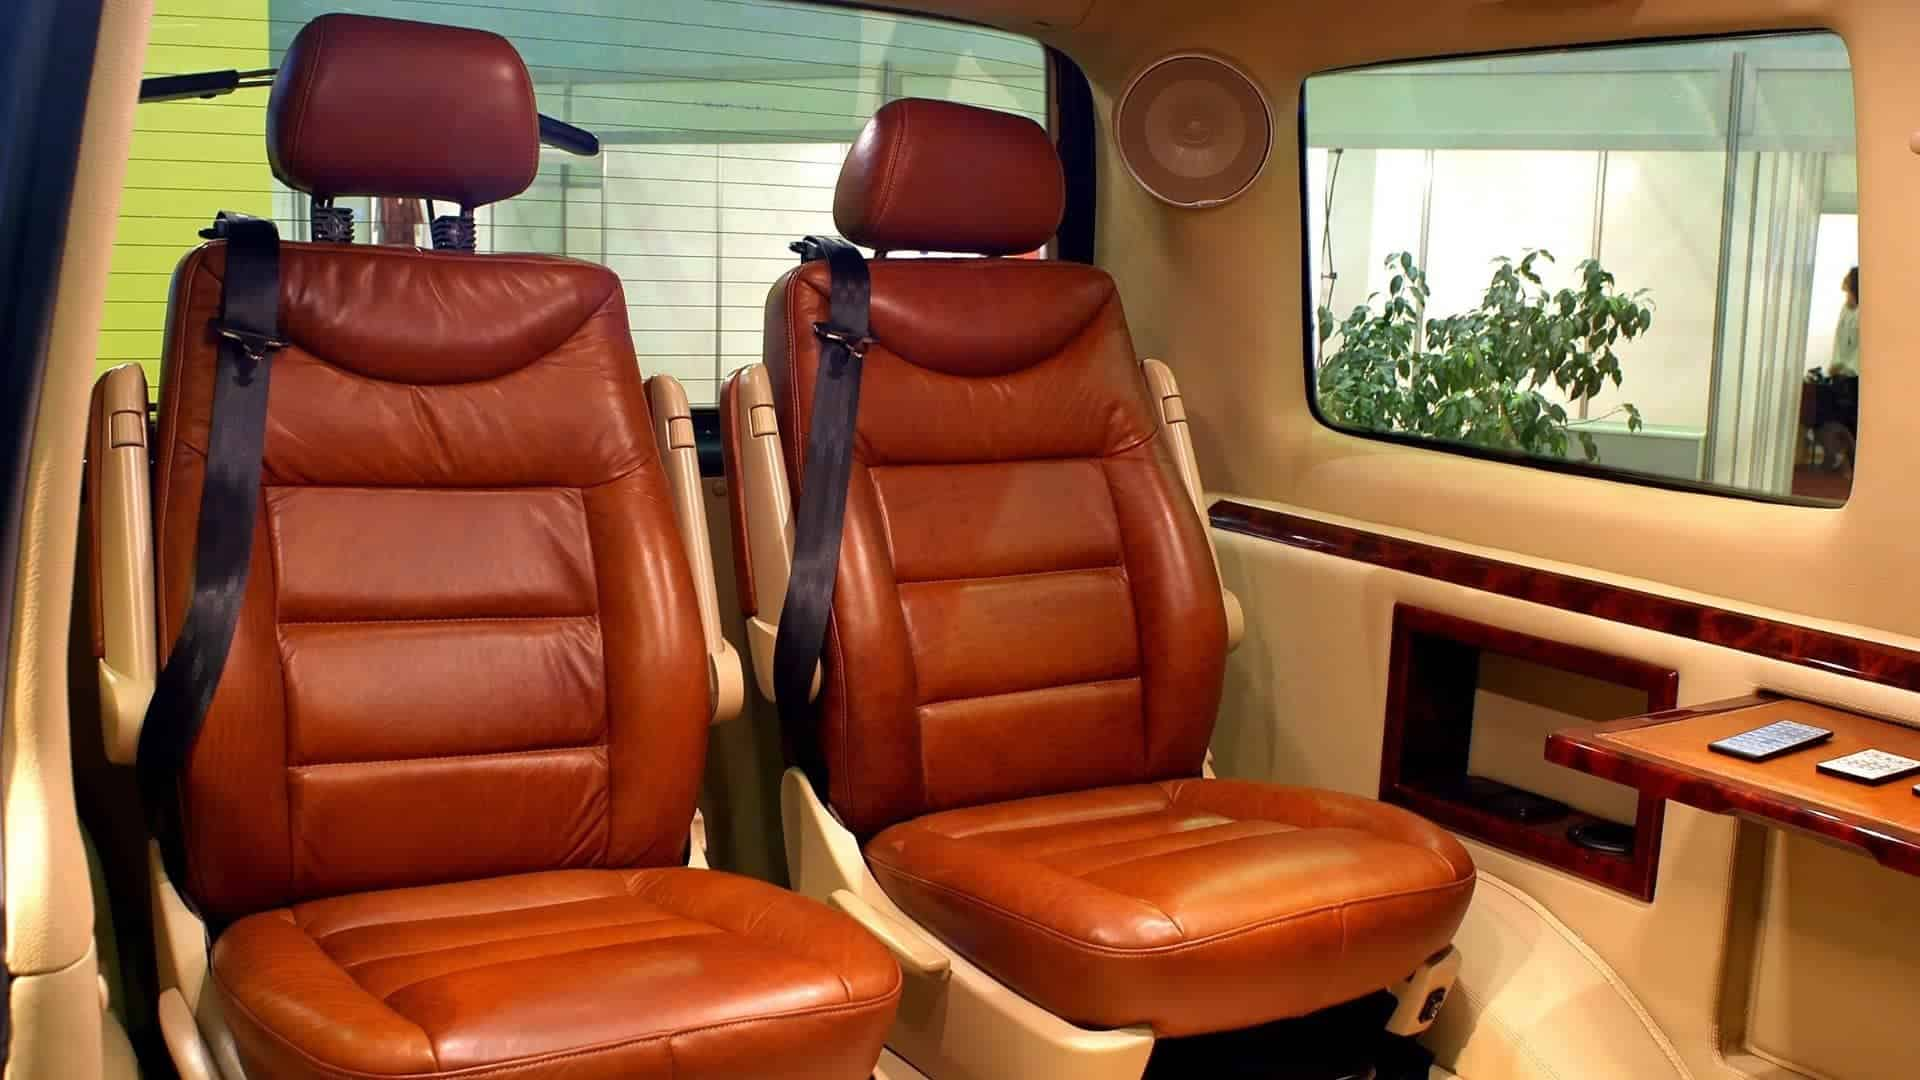 How To Paint Leather Seats